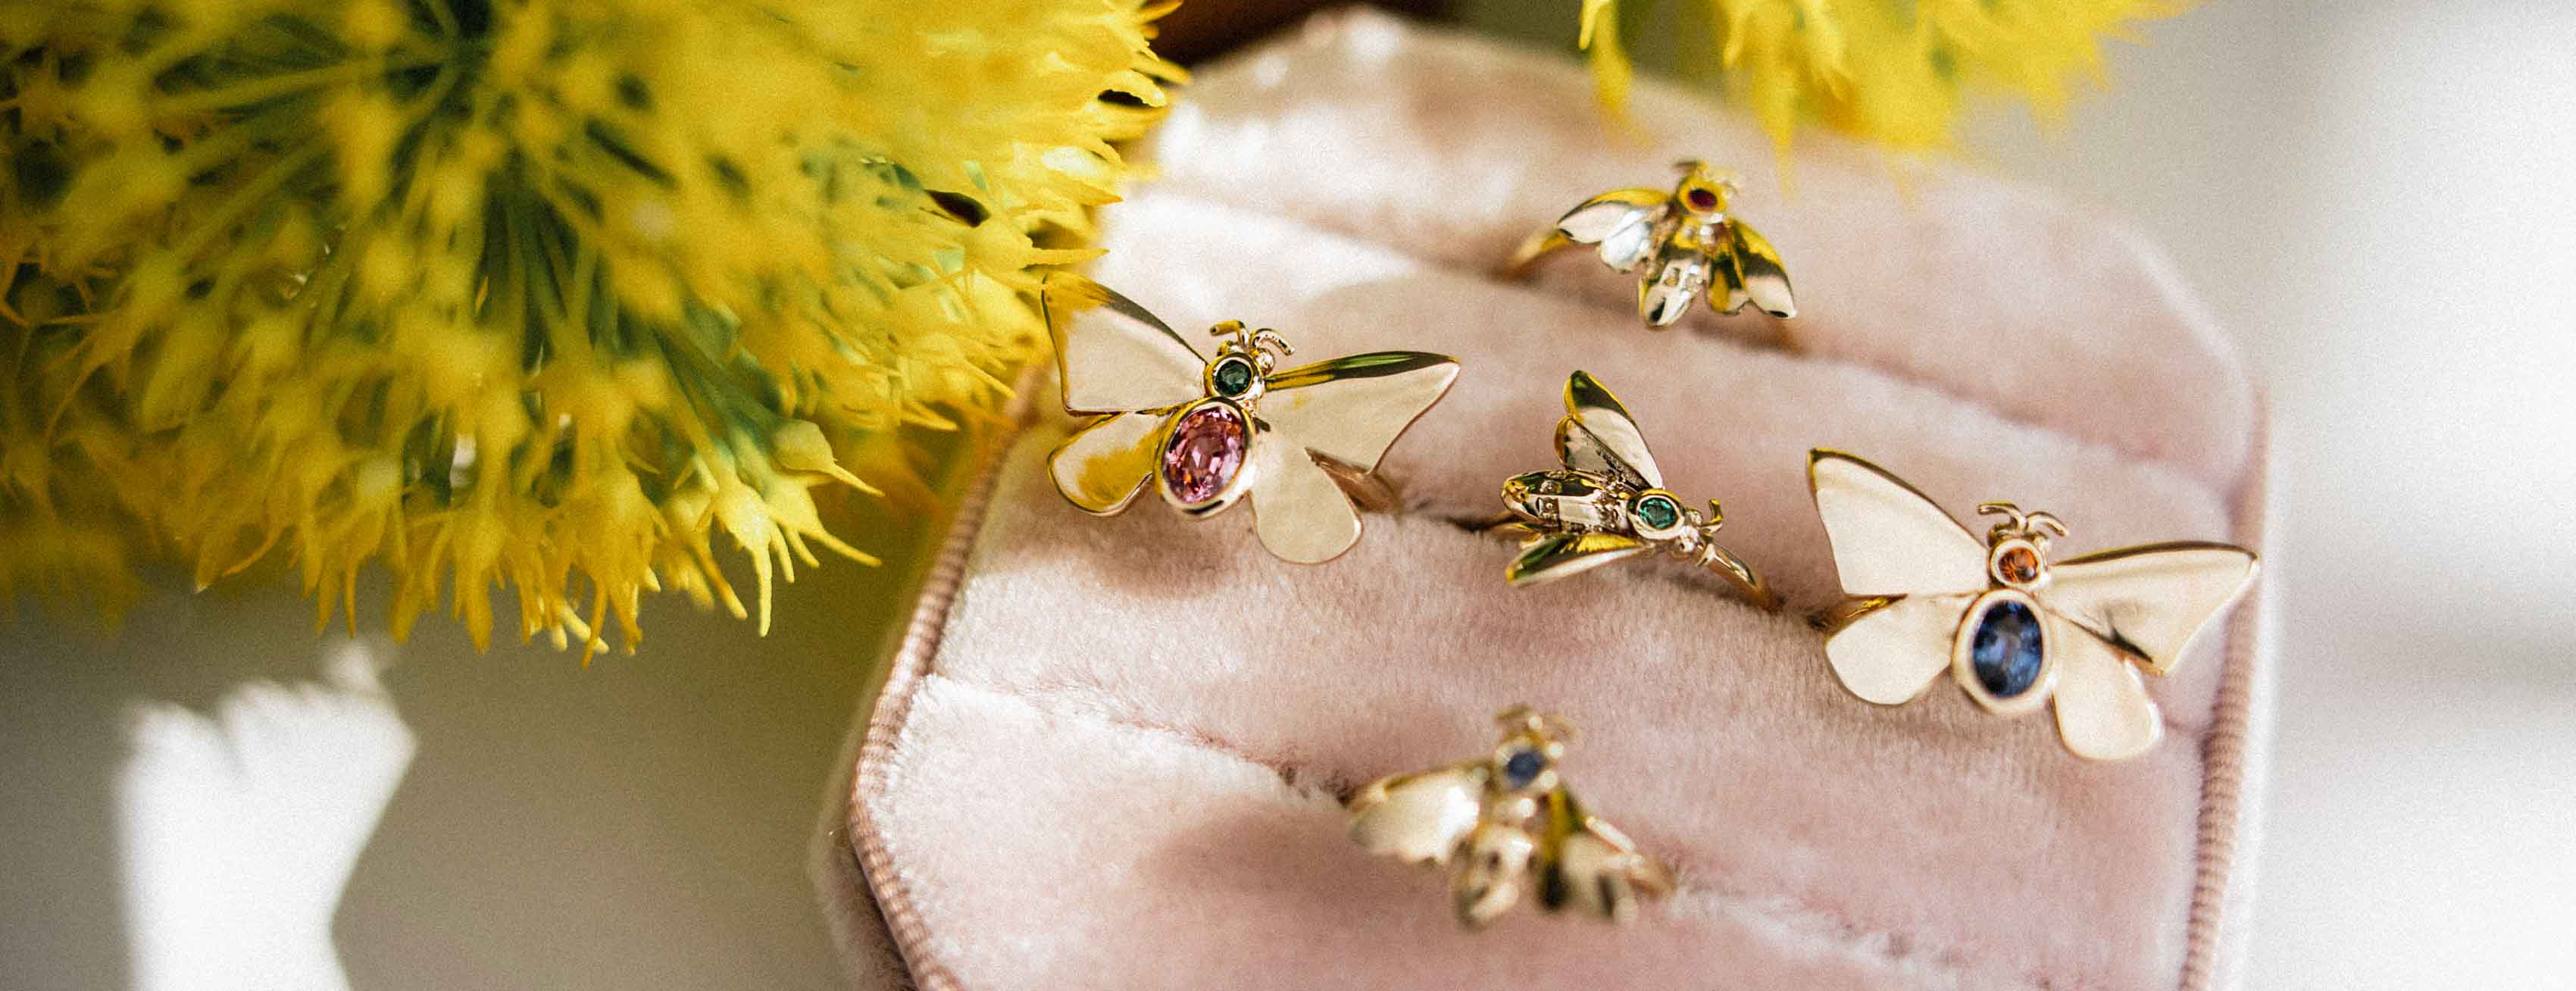 Jessica Steele Metamorphosis jewellery collection at The Jewellery Cut Shop